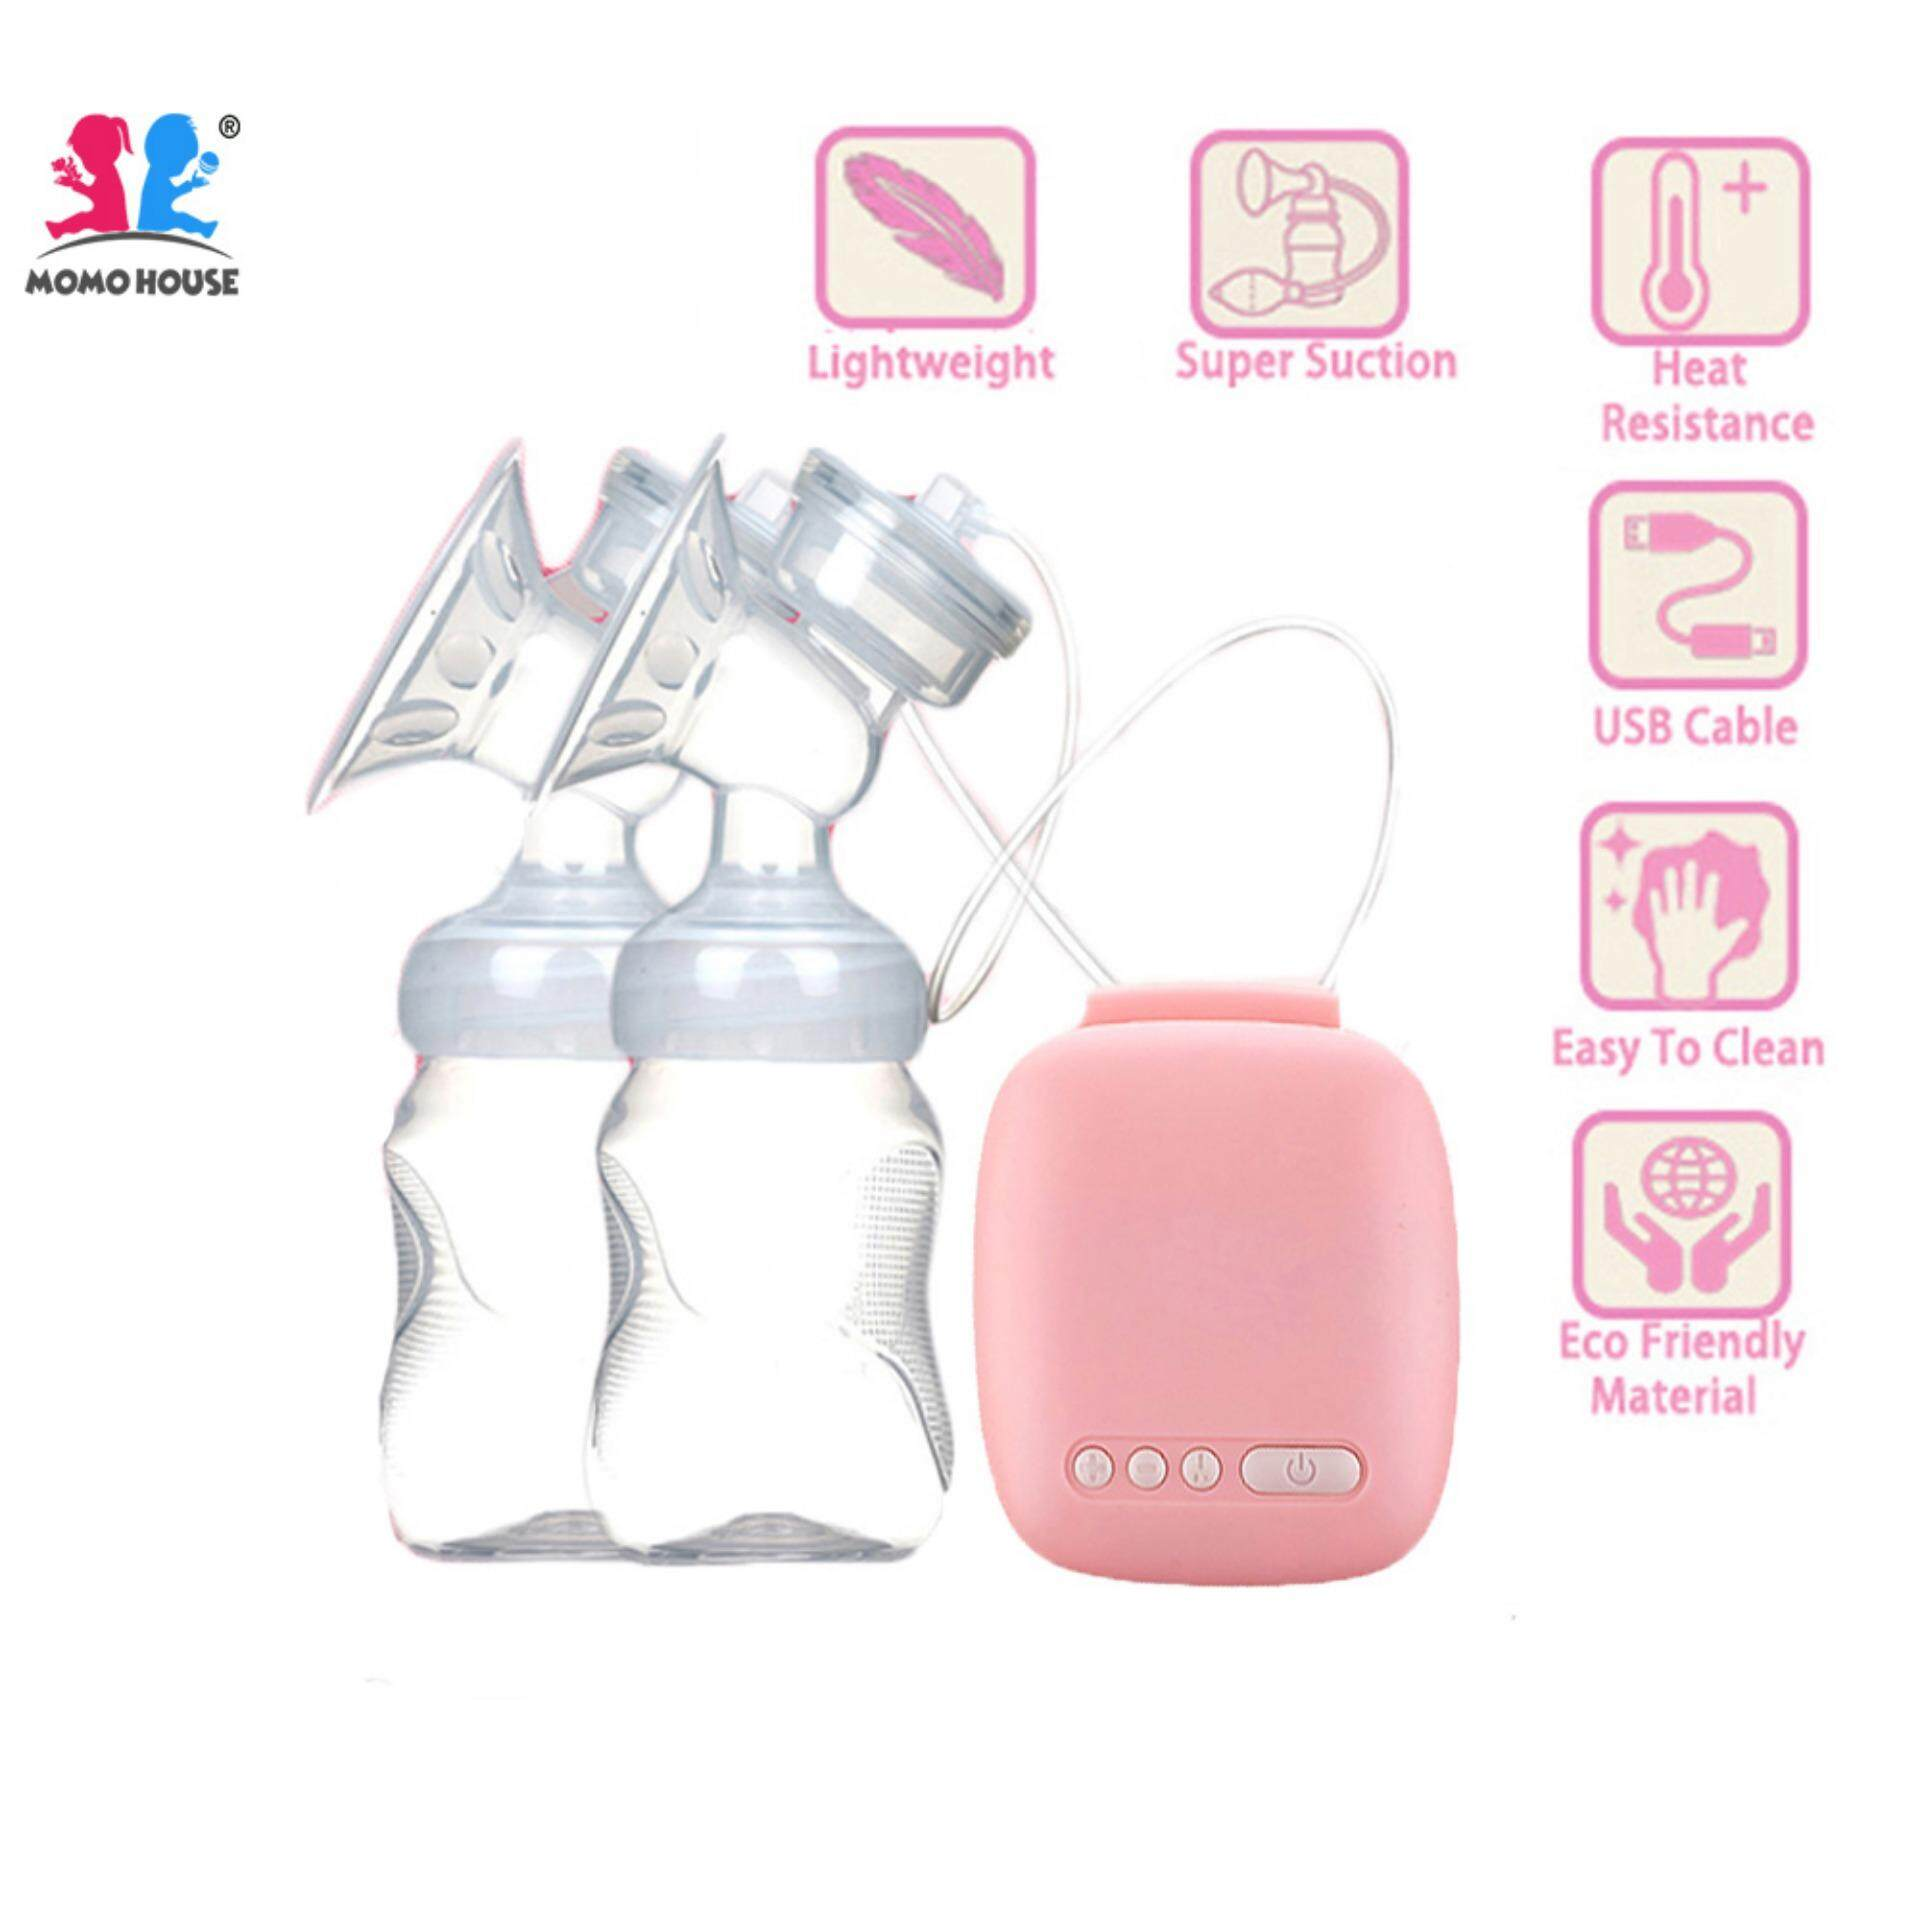 Momo House Electric Double Breast Pump Breastpump - Supur Suction & Massage [delivery In 1-3 Working Day] - Sale By Momo House.